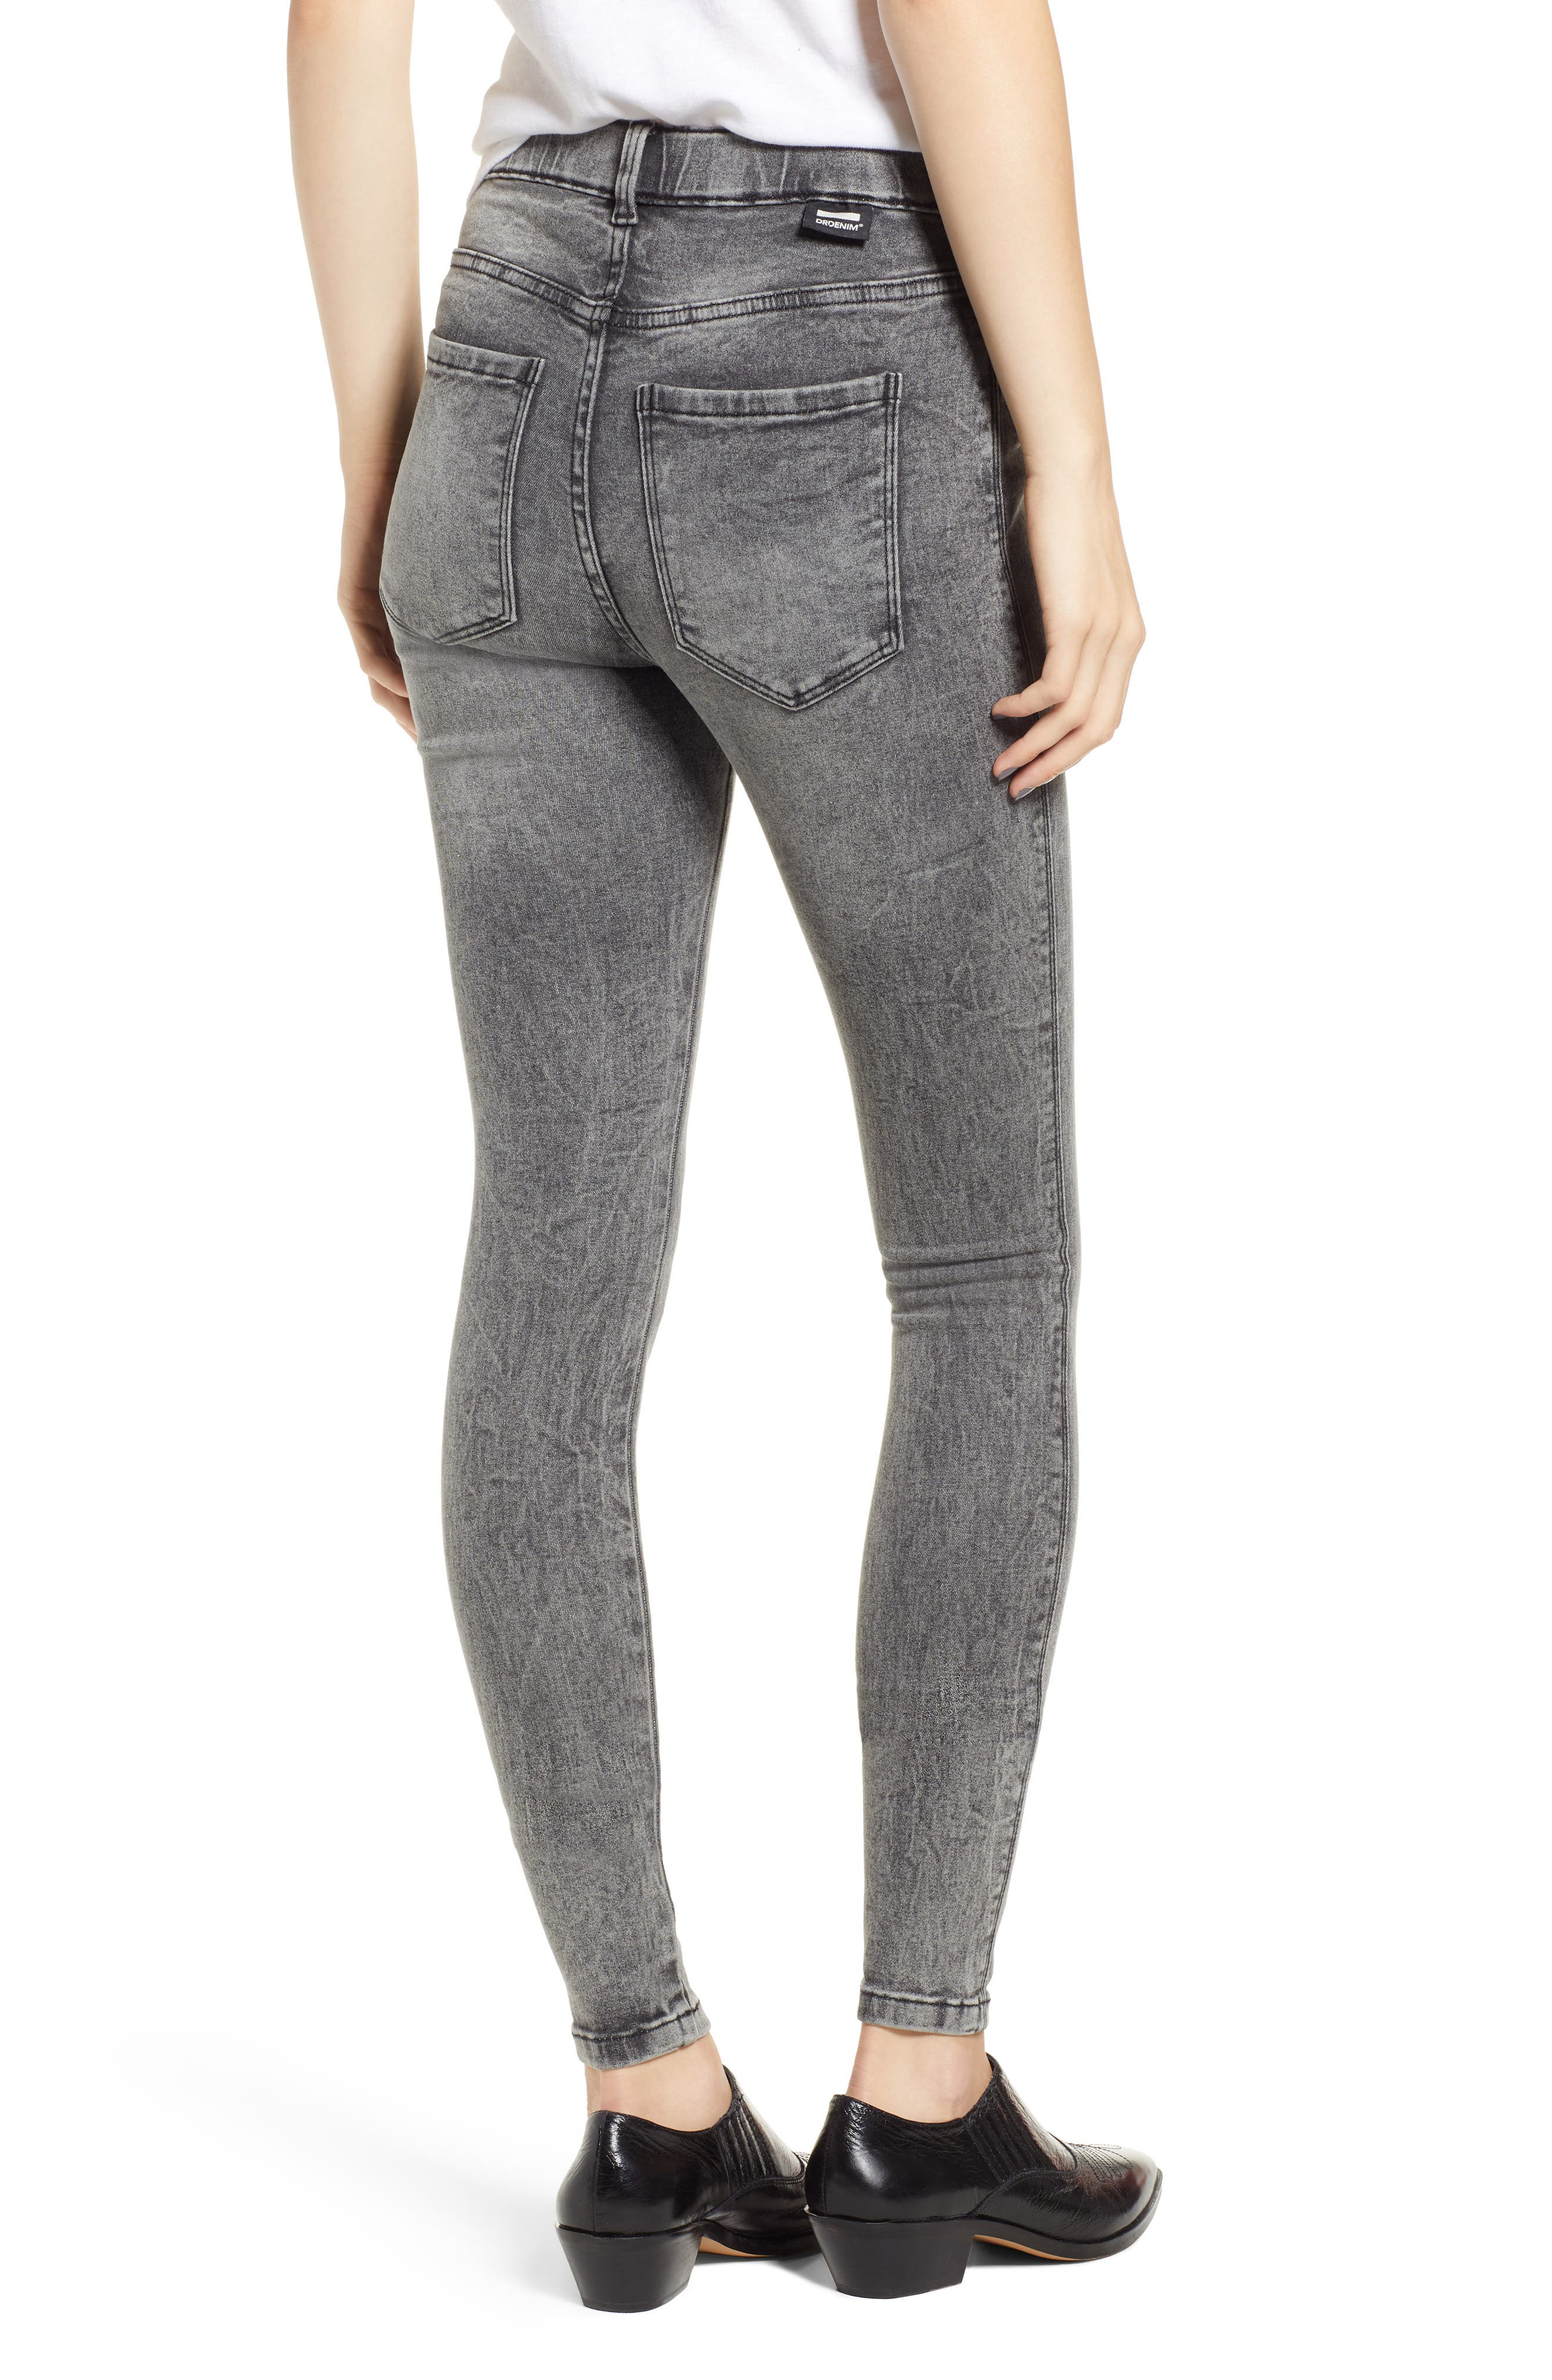 Lexy Skinny Jeans,                             Alternate thumbnail 2, color,                             BOULDER GREY